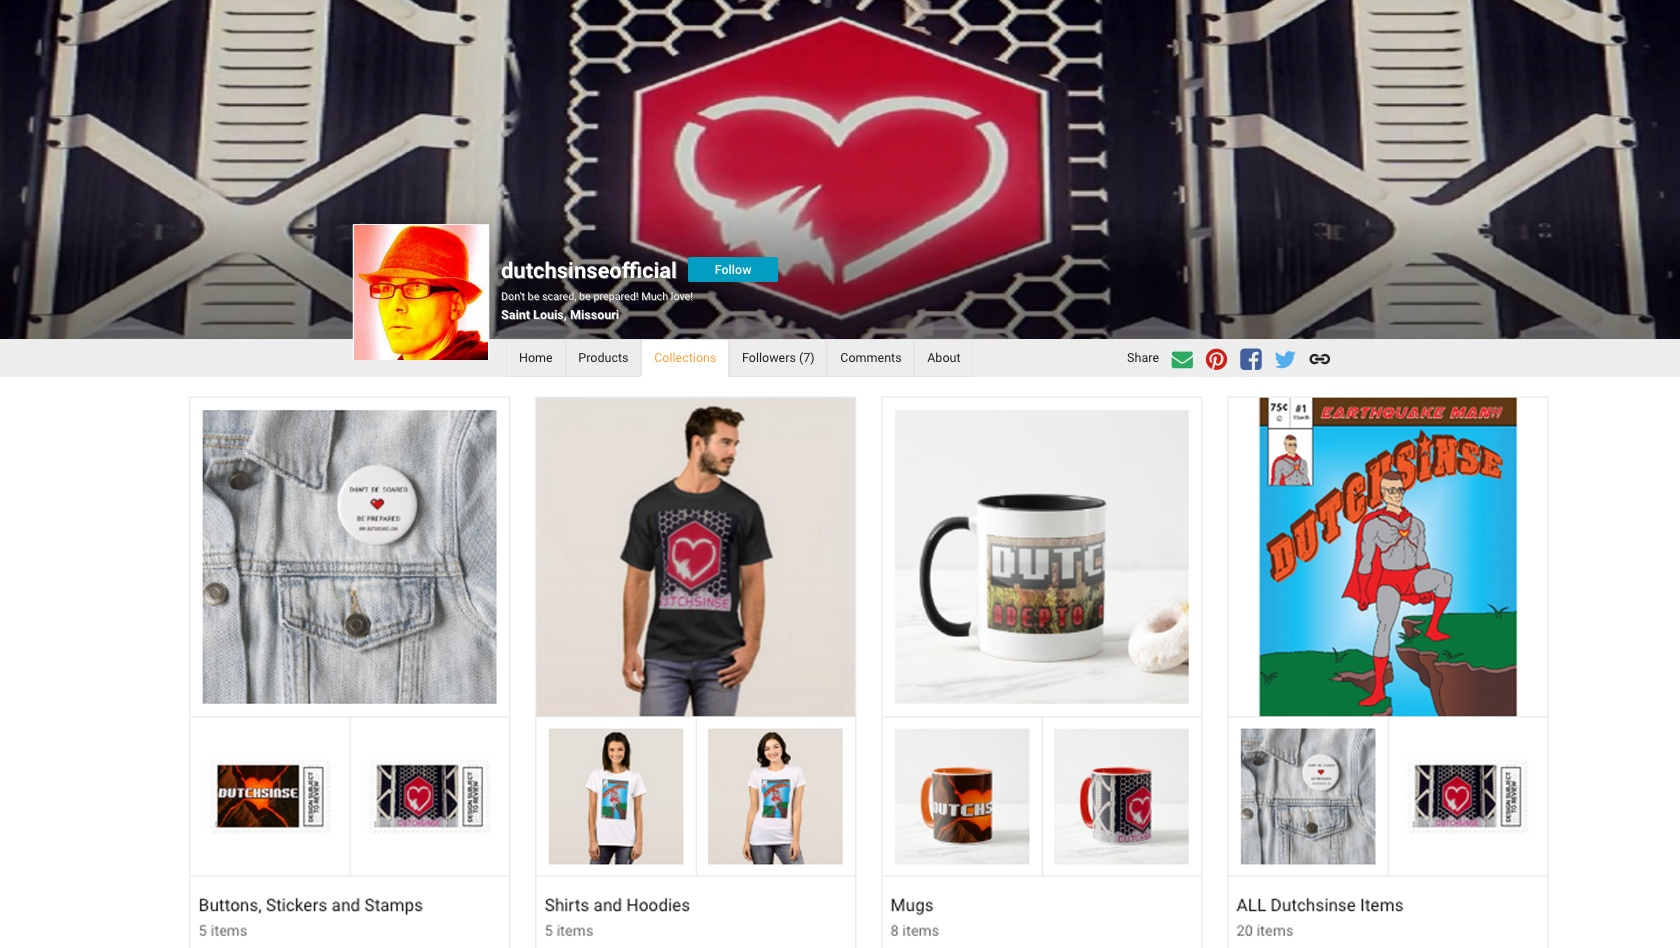 Dutchsinse on the Dutchsinse Official zazzle store!